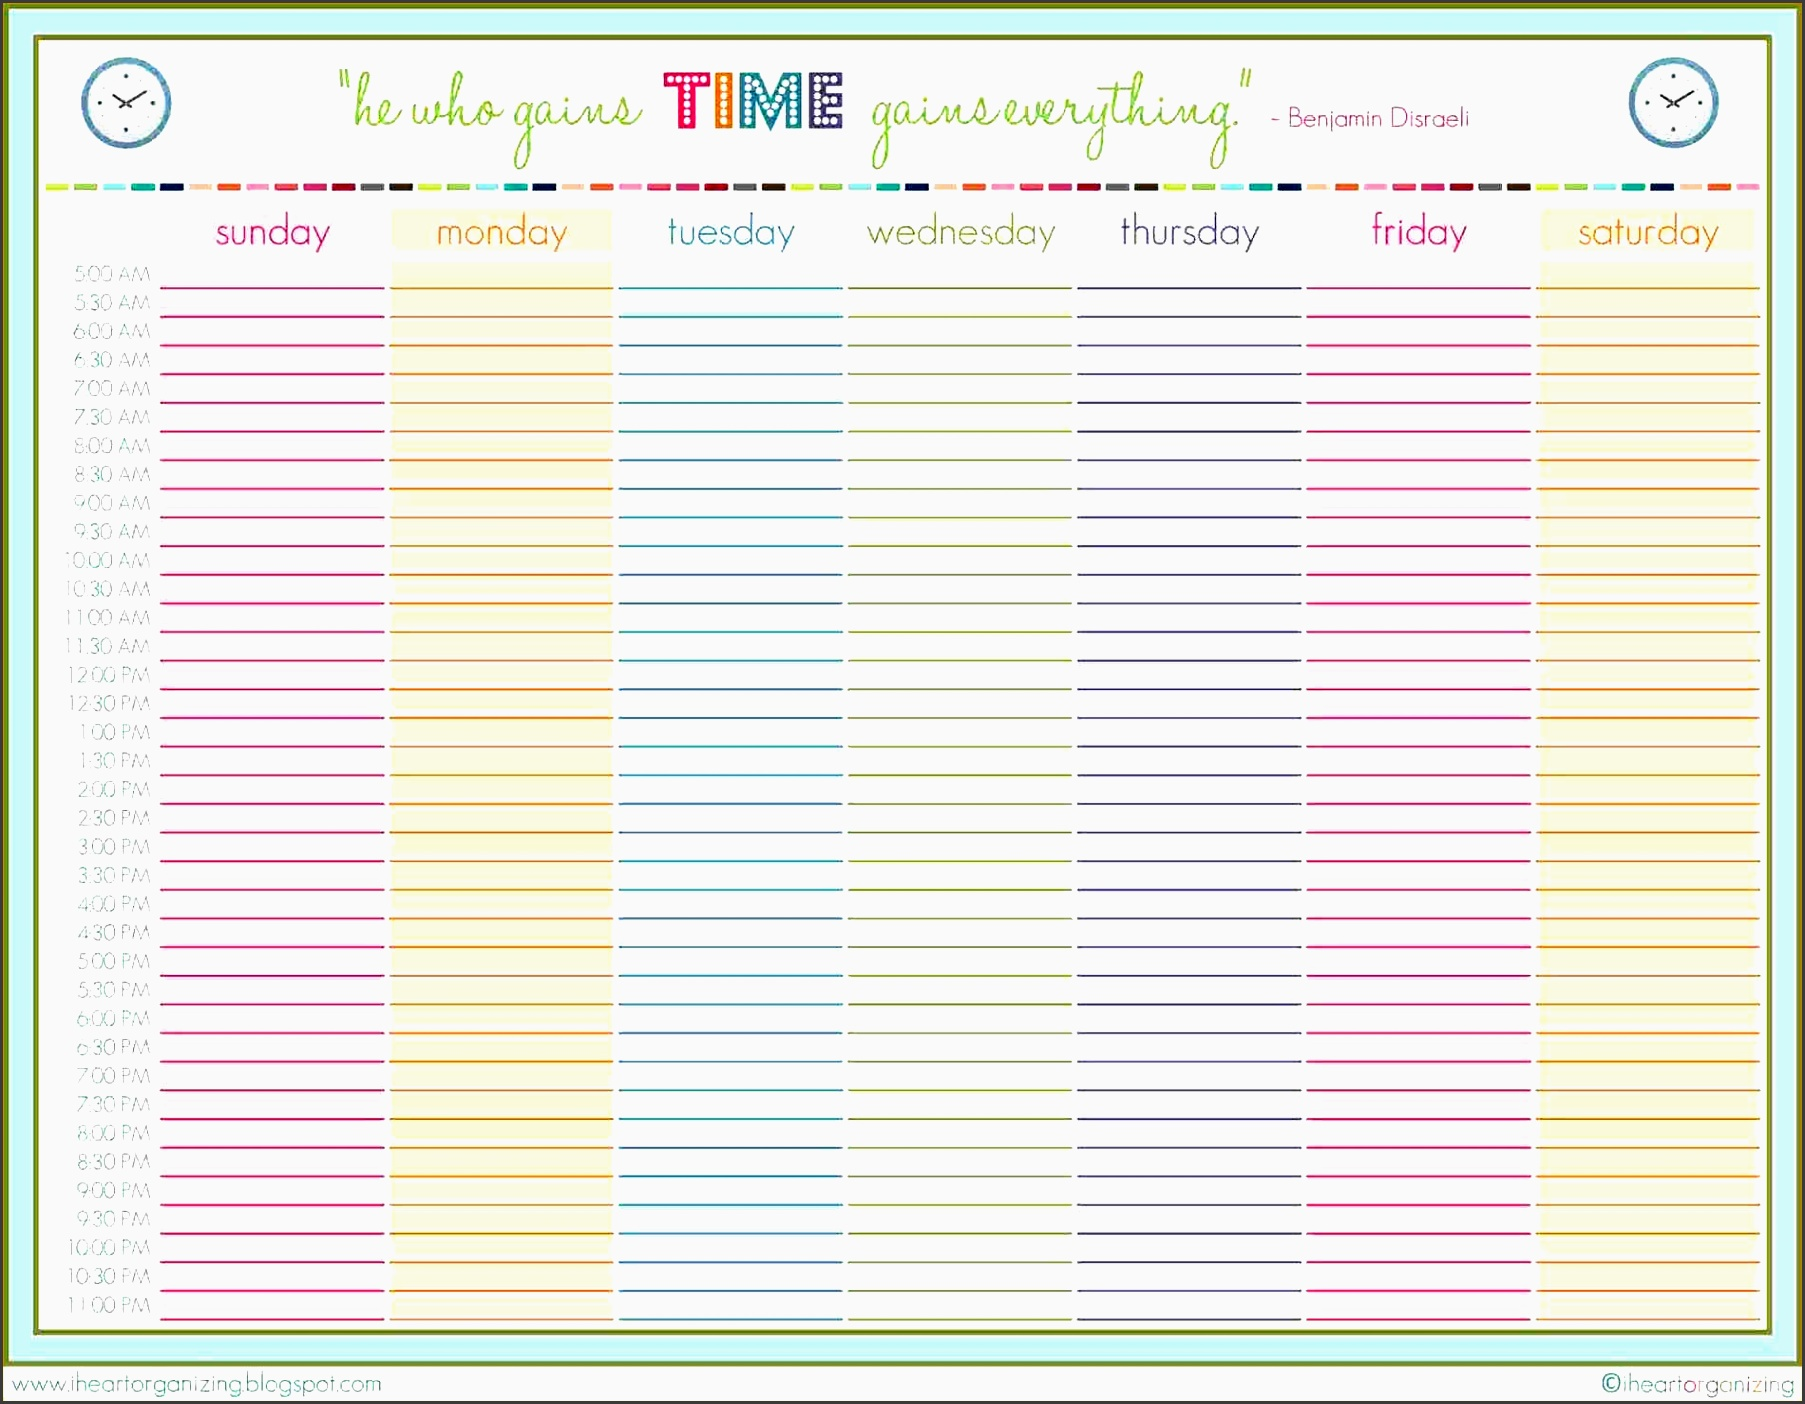 excel calendar excel printable online weekly uk free templates for weekly daily timetable template excel calendar